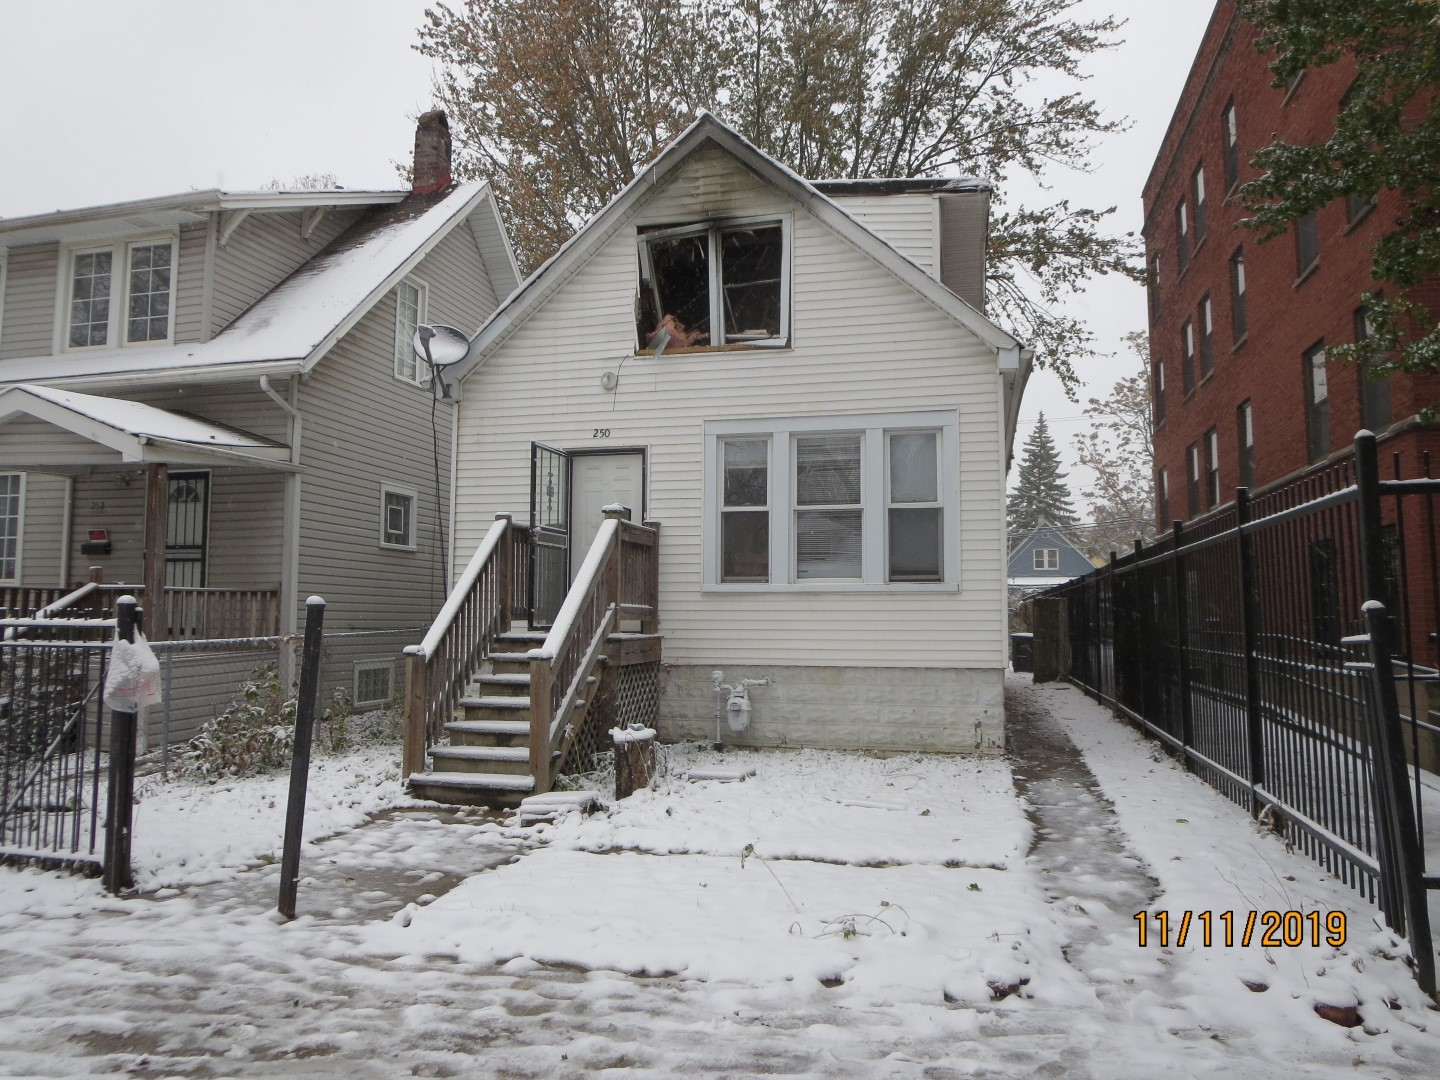 FIRE DAMAGED PROPERTY SOLD AS-IS.   PLEASE NOTE: 0% TAX PRORATIONS ARE OFFERED, THE SELLER WILL PAY CURRENT AND ALL PRIOR TAX BUT 0% CREDIT FOR FUTURE BILLS.  SPECIAL WARRANTY DEED AT CLOSING. NO SURVEY.  FOR FASTER RESPONSE PLEASE USE SELLERS CONTRACT, ADDENDUM AND DISCLOSURES UNDER DOCUMENTS. EMAILING AGENT IS PREFERRED OVER CALLS . SHOW AT YOUR OWN RISK DUE TO CONDITION.